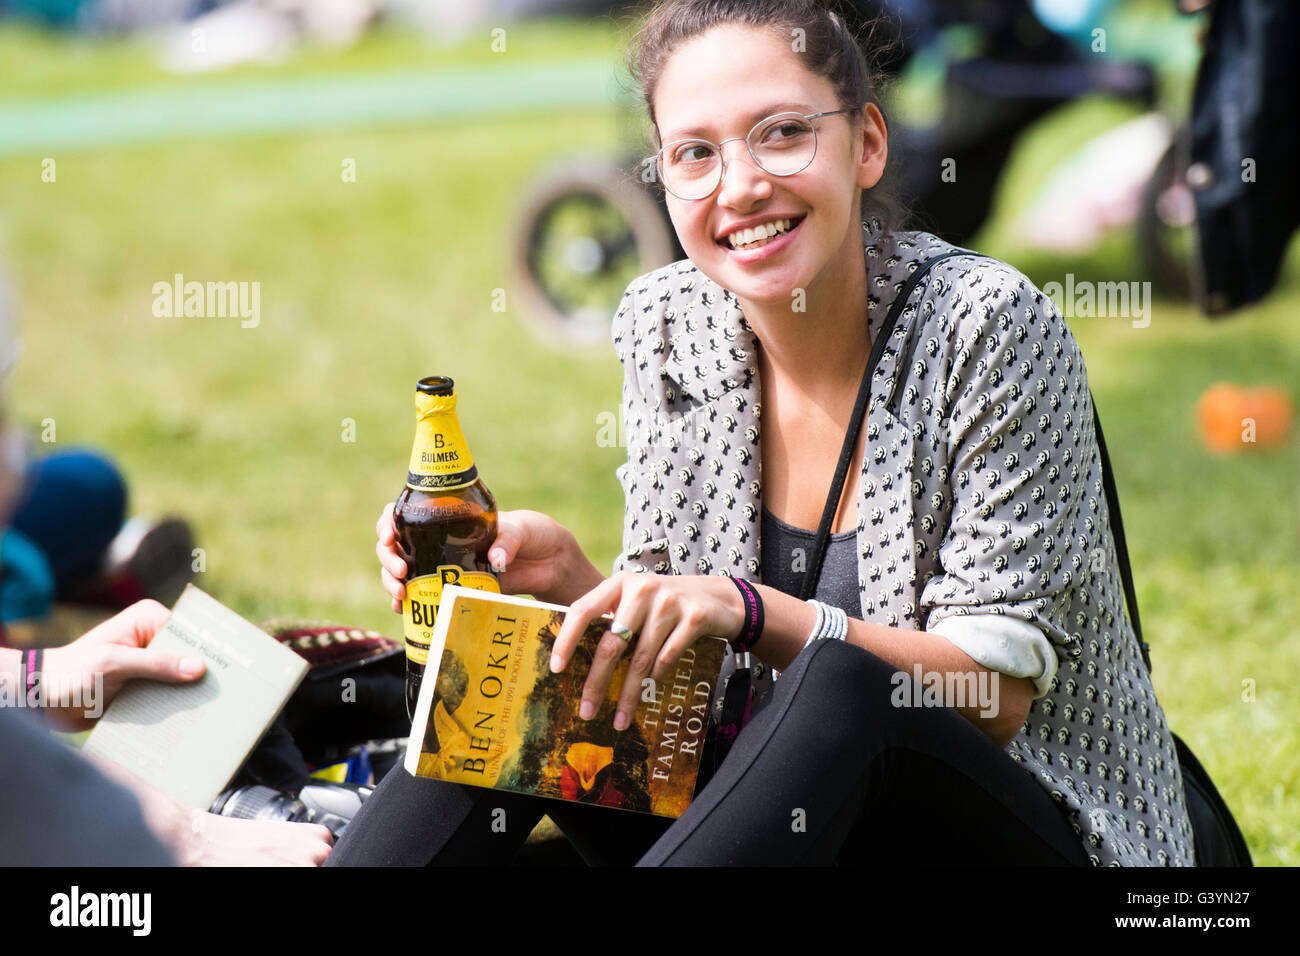 A woman  visiting attending enjoying herself with a bottle of cider  in the warm sunshine  at  the Hay Festival - Stock Image